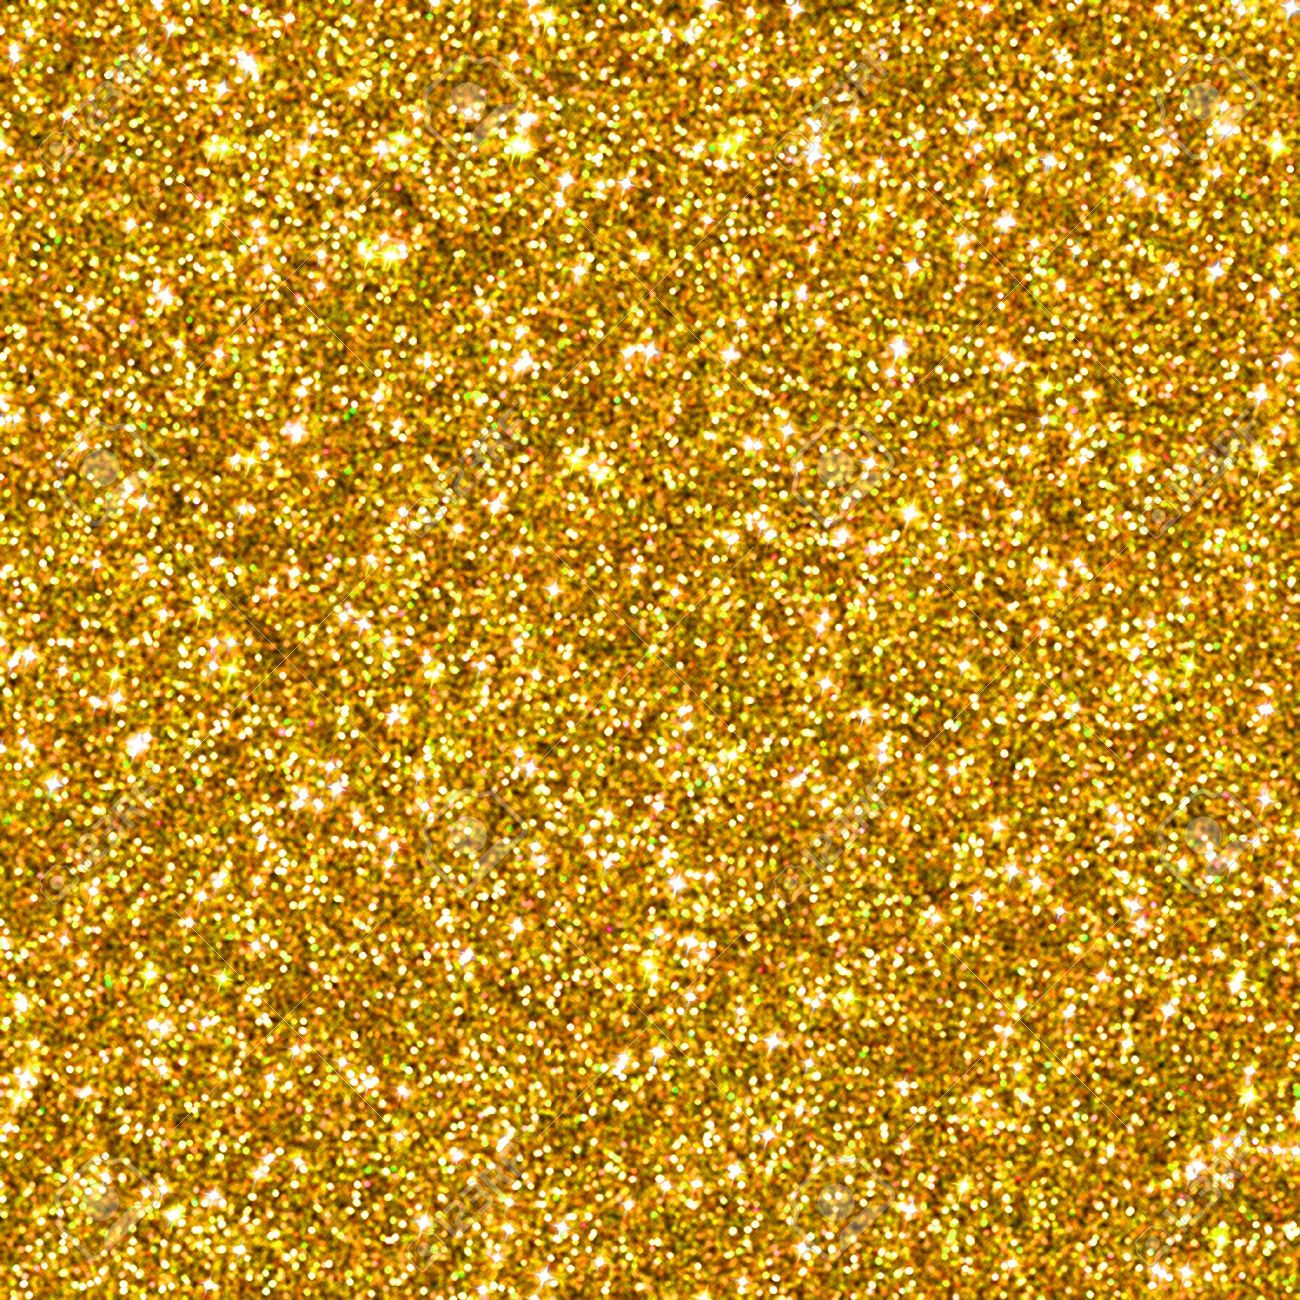 Delightful Golden Glitter For Texture Or Background Stock Photo   18239914